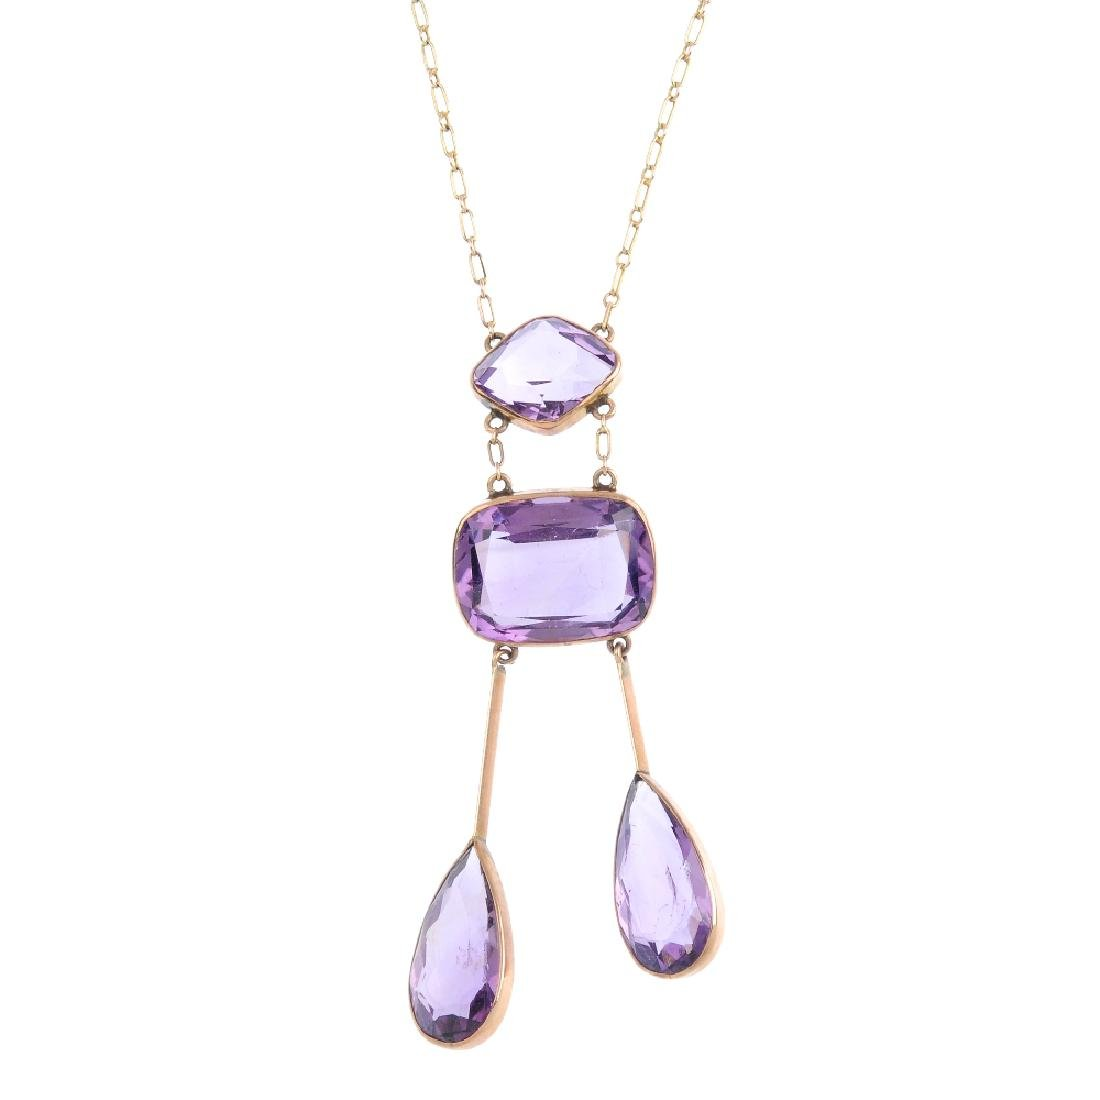 An early 20th century amethyst negligee pendant. The